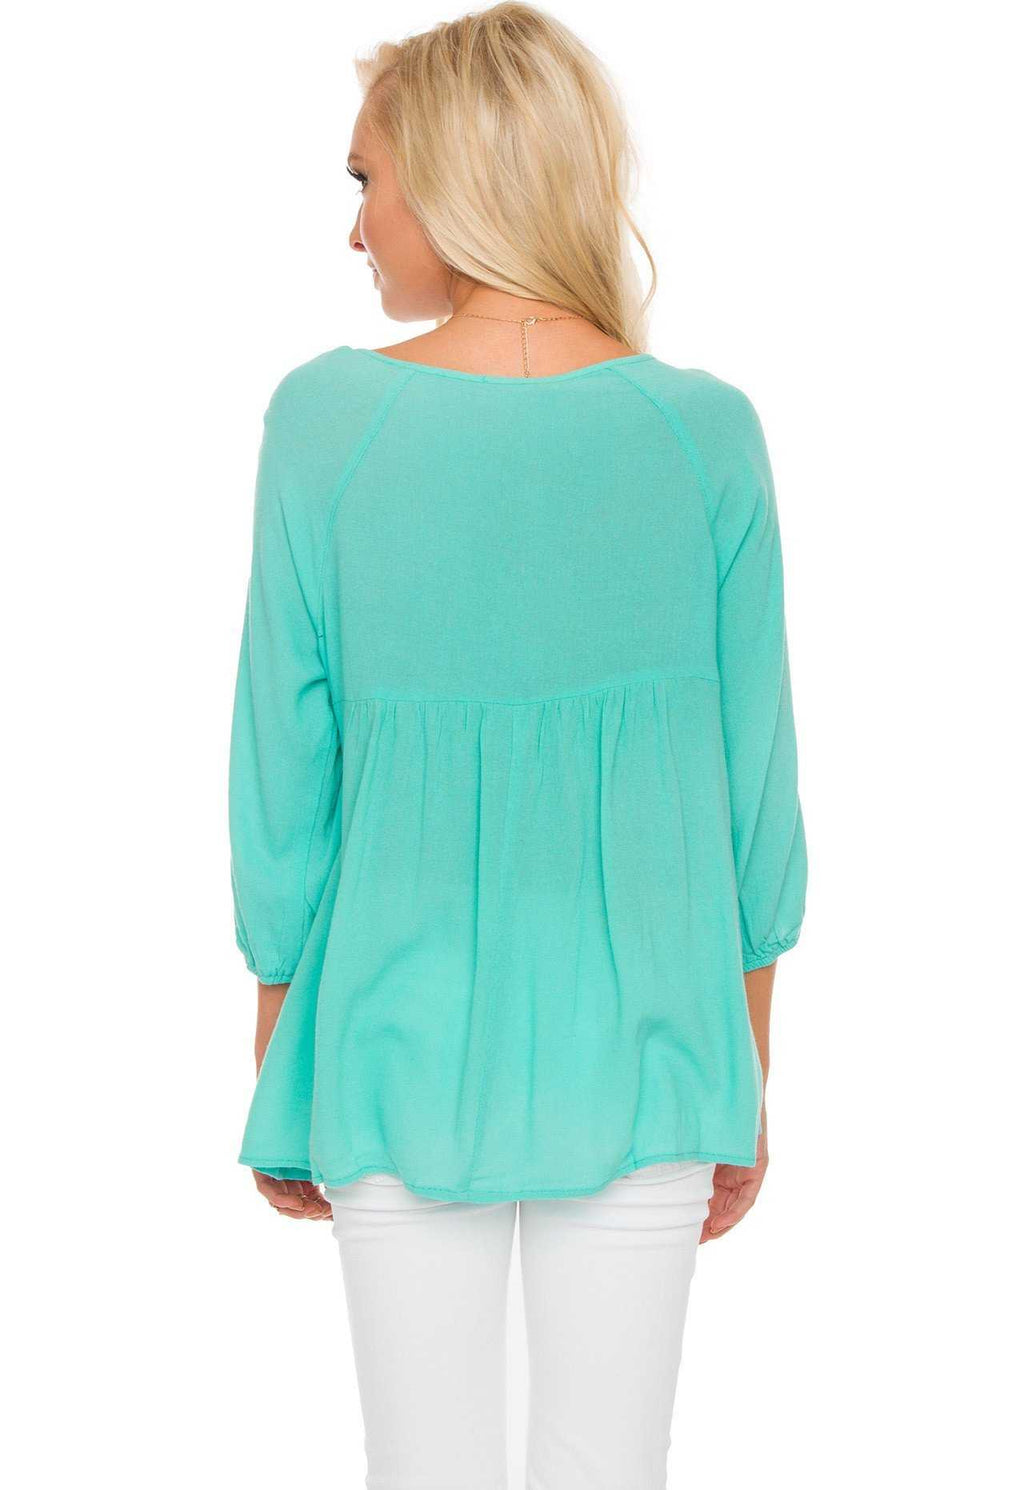 Tops - Honor Lace Top